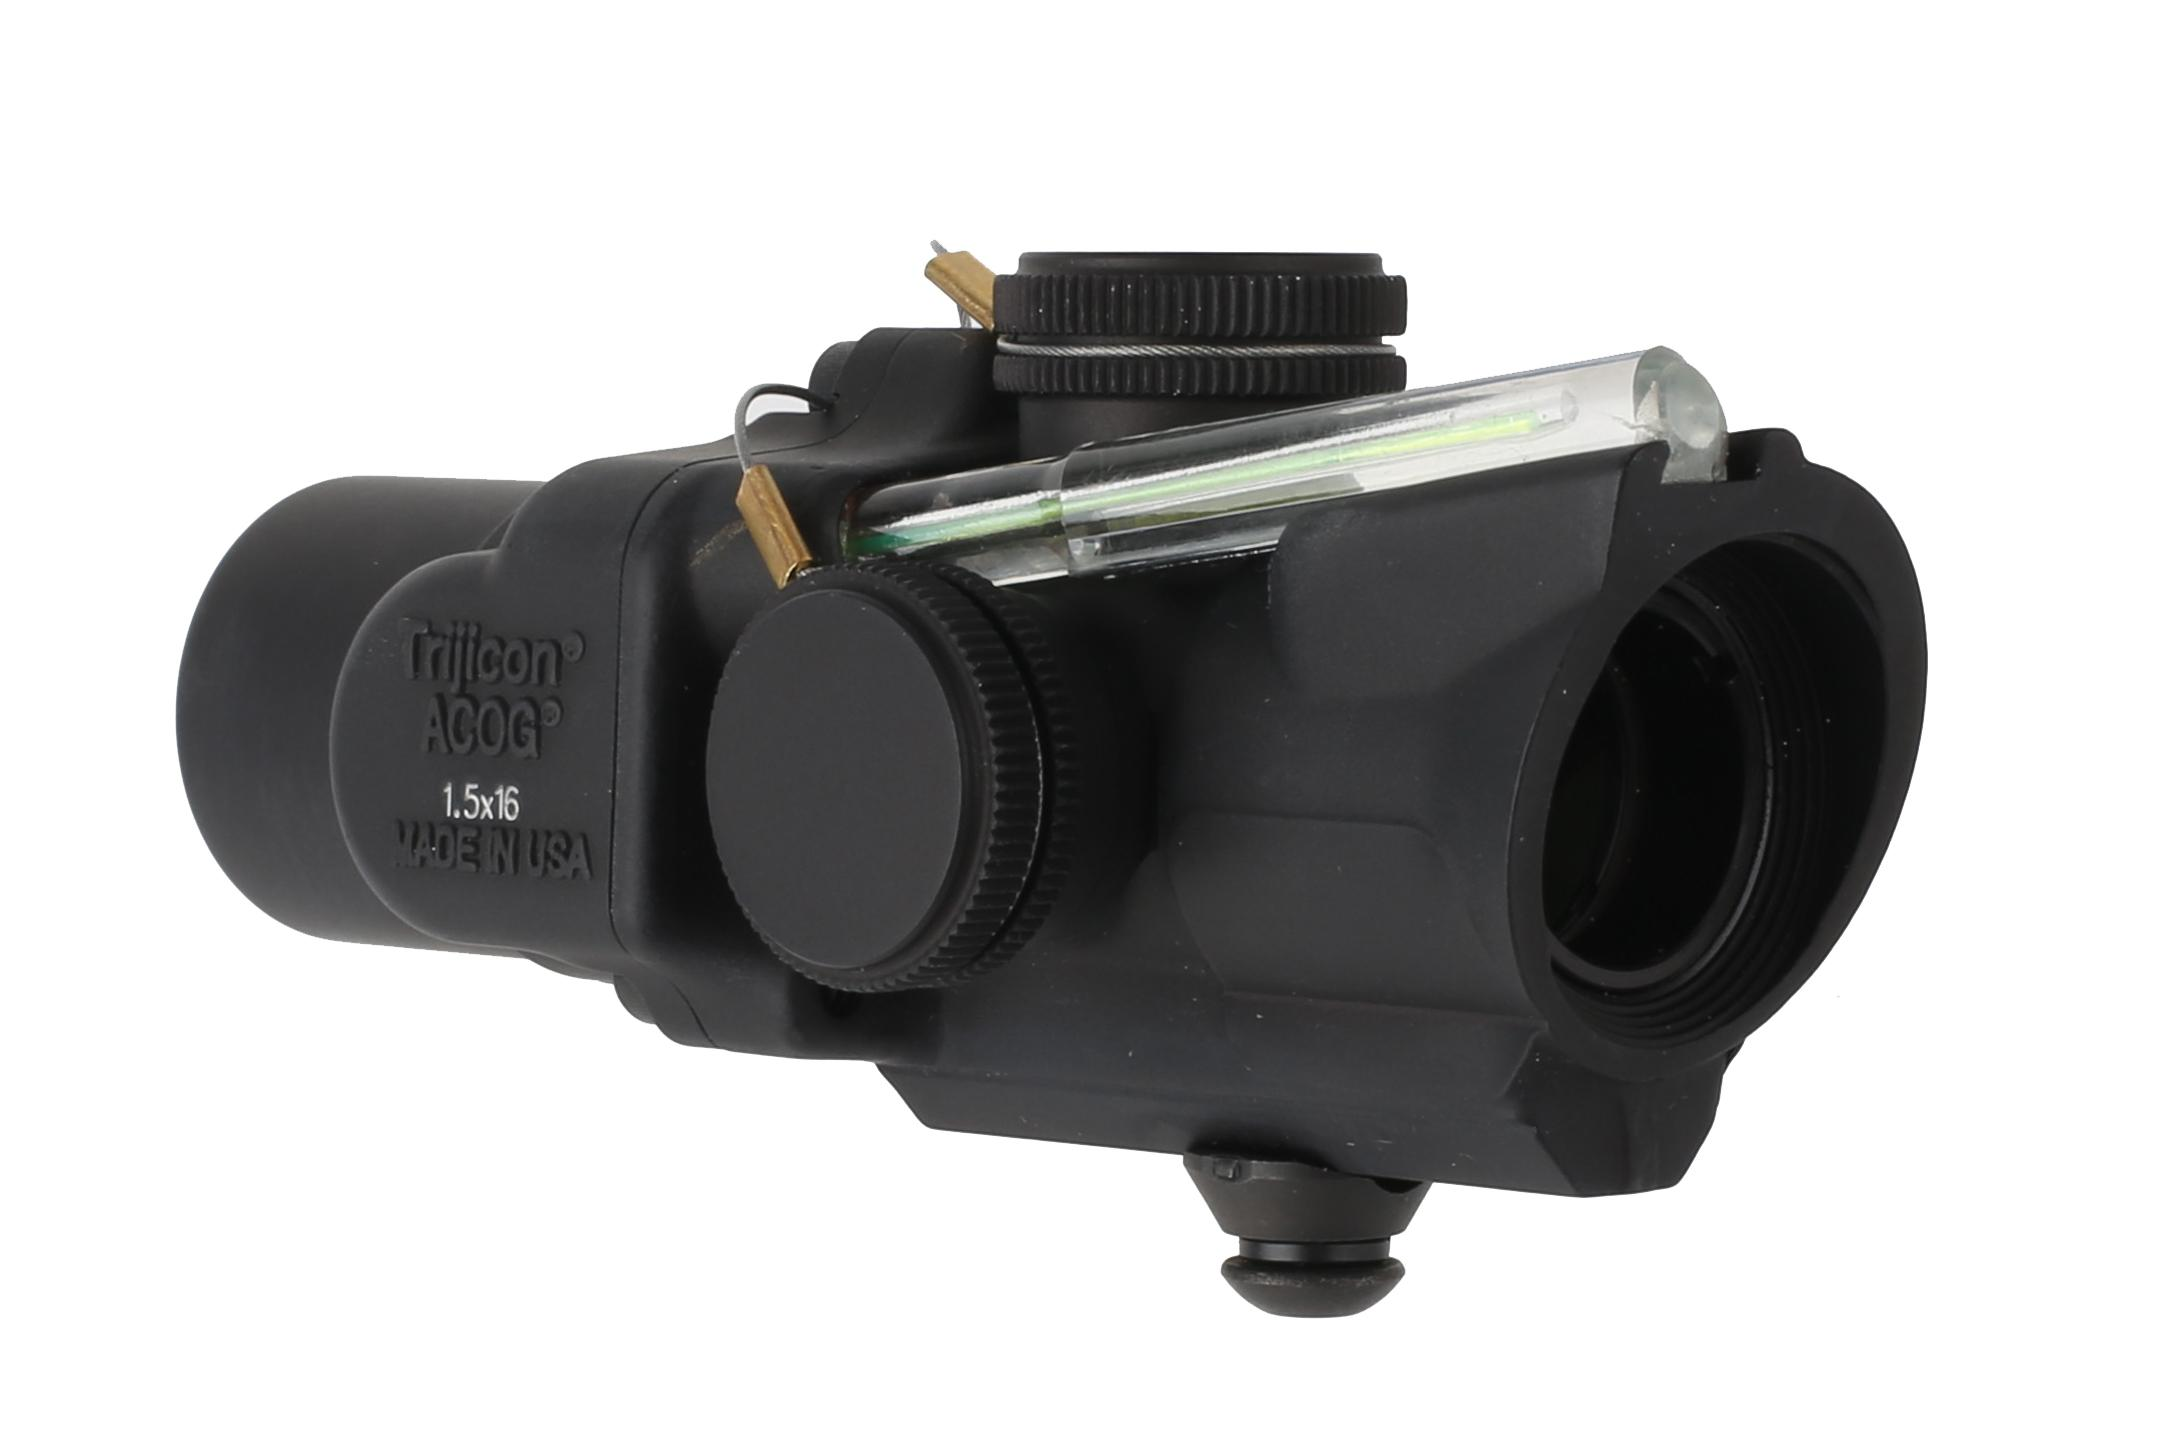 Trijicon 1.5x16S ACOG with low base and ACSS CQB-M5 reticle is illuminated by Tritium and a green light gathering fiber optic